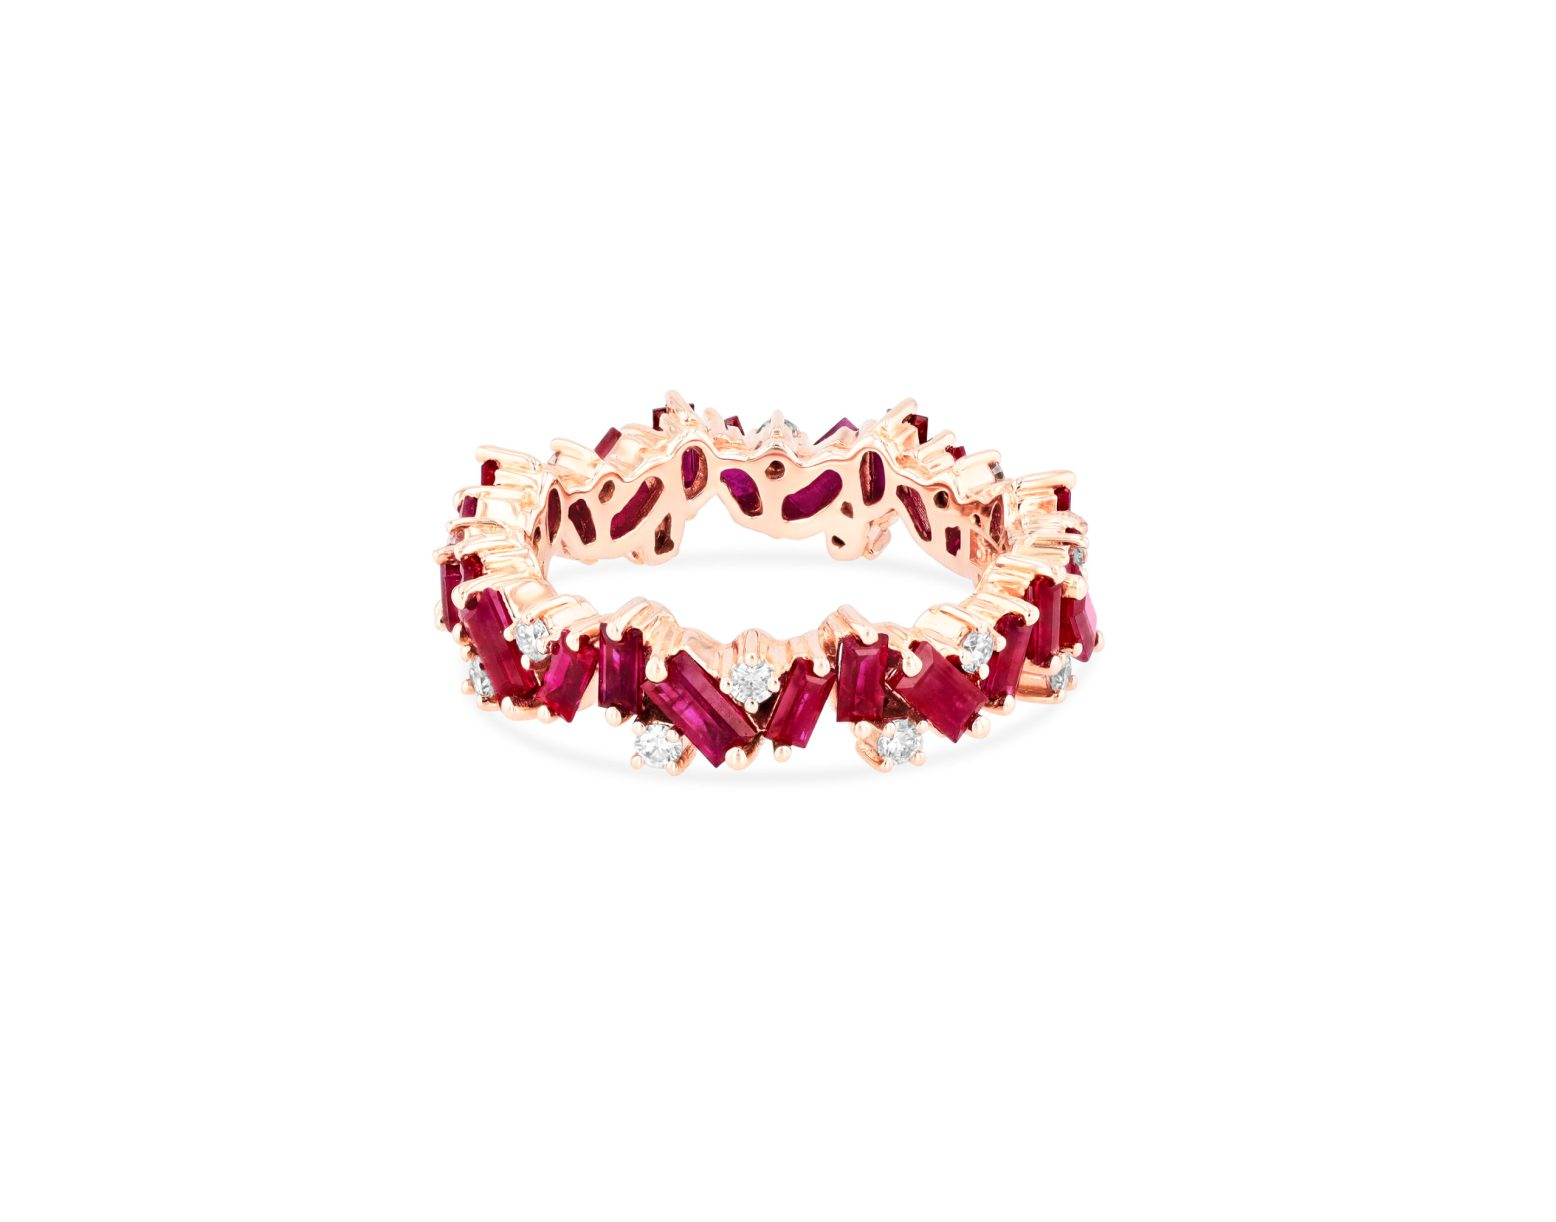 OPTION 4 SUZANNE KALAN - RUBY FRENZY ETERNITY BAND 18kt ROSE GOLD, 18kt YELLOW GOLD, 18kt WHITE GOLD